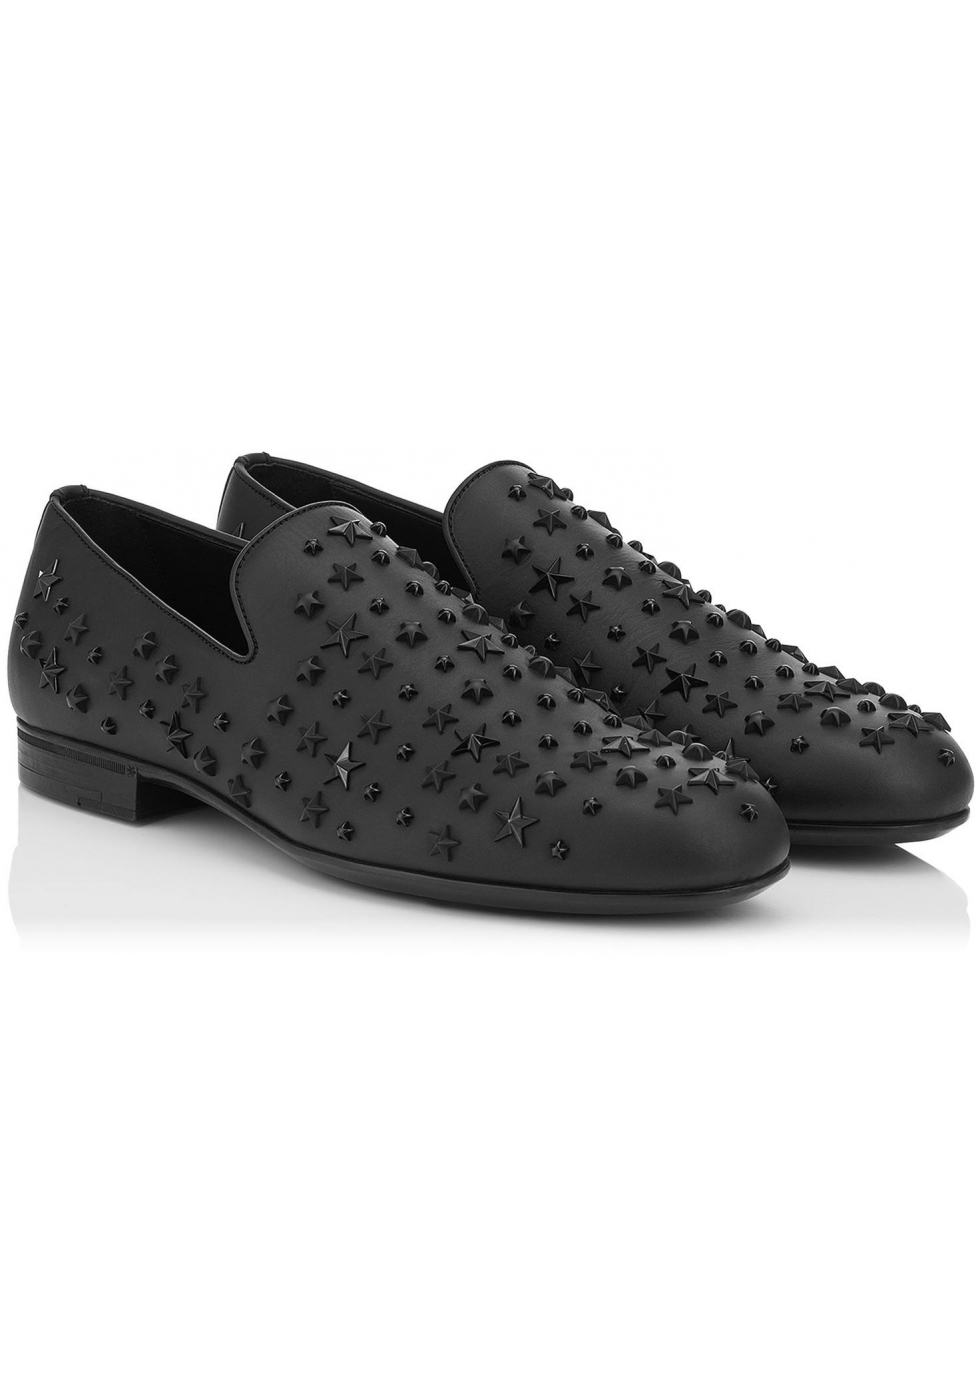 2d431f307a Jimmy Choo men's loafers in black Leather metal stars - Italian Boutique